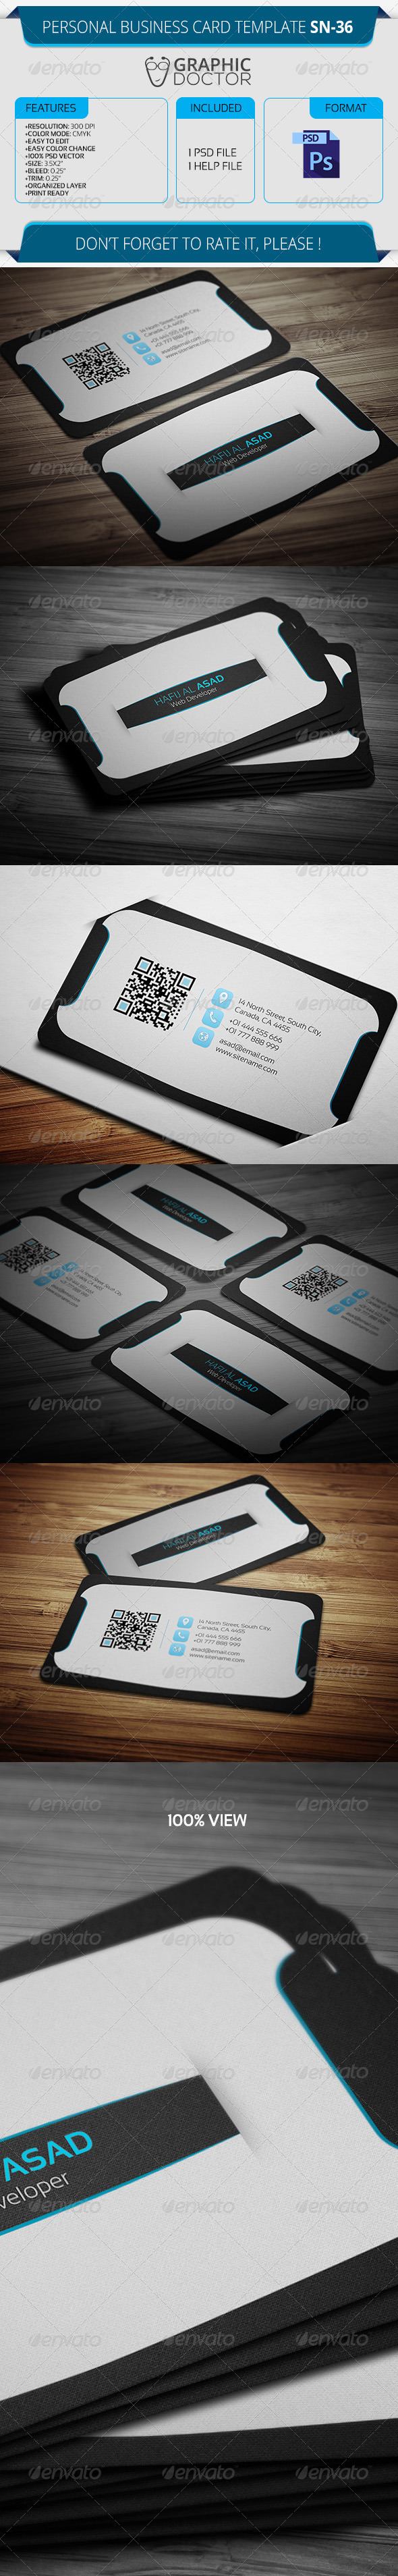 Personal Business Card Template SN-36